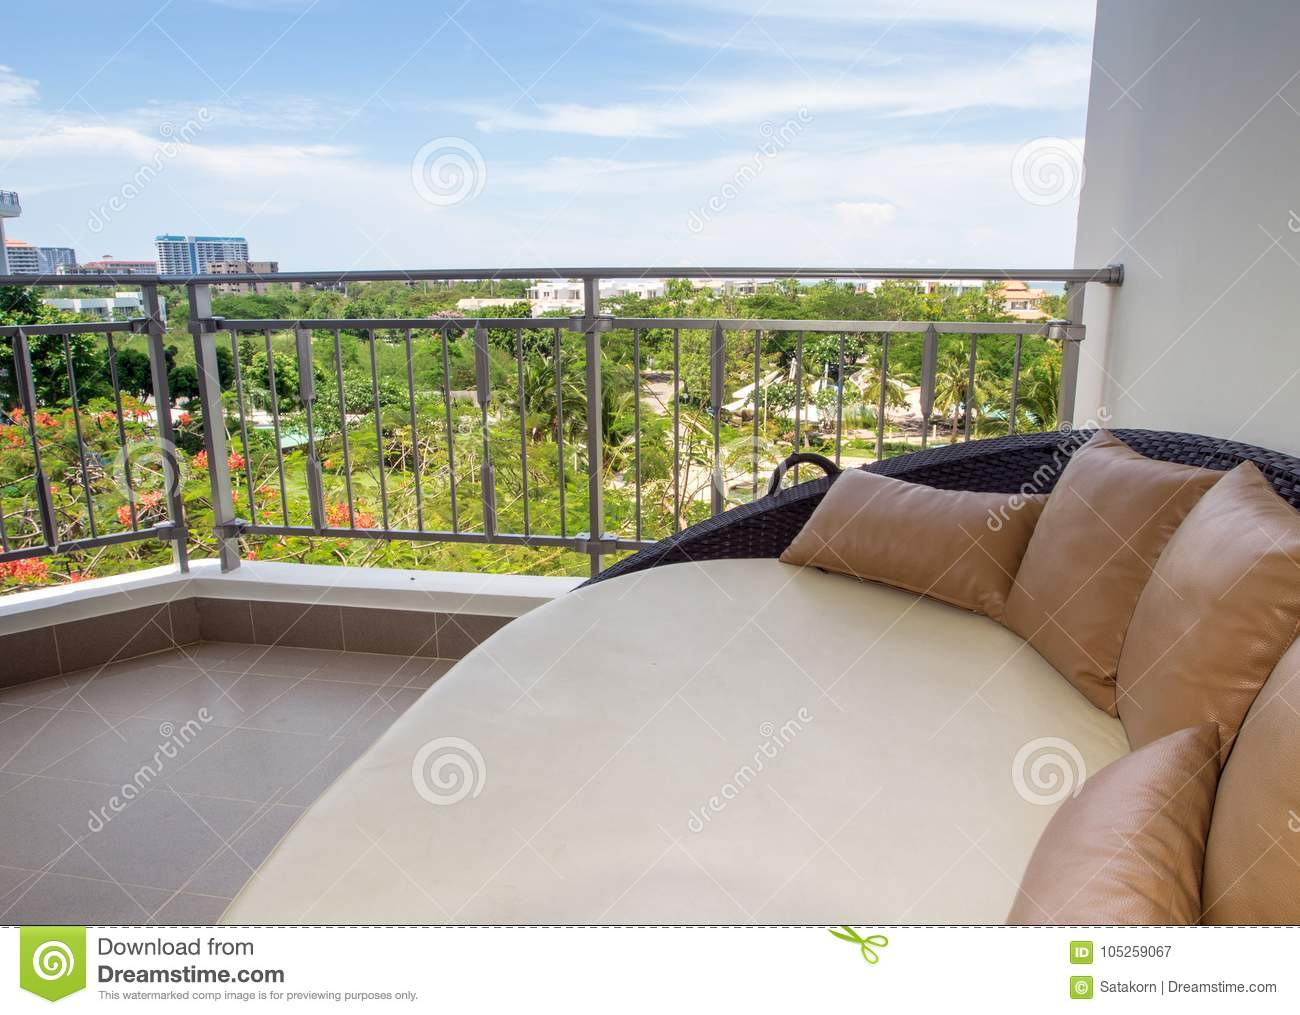 - Waterproof Outdoor Daybed At The Balcony Stock Image - Image Of